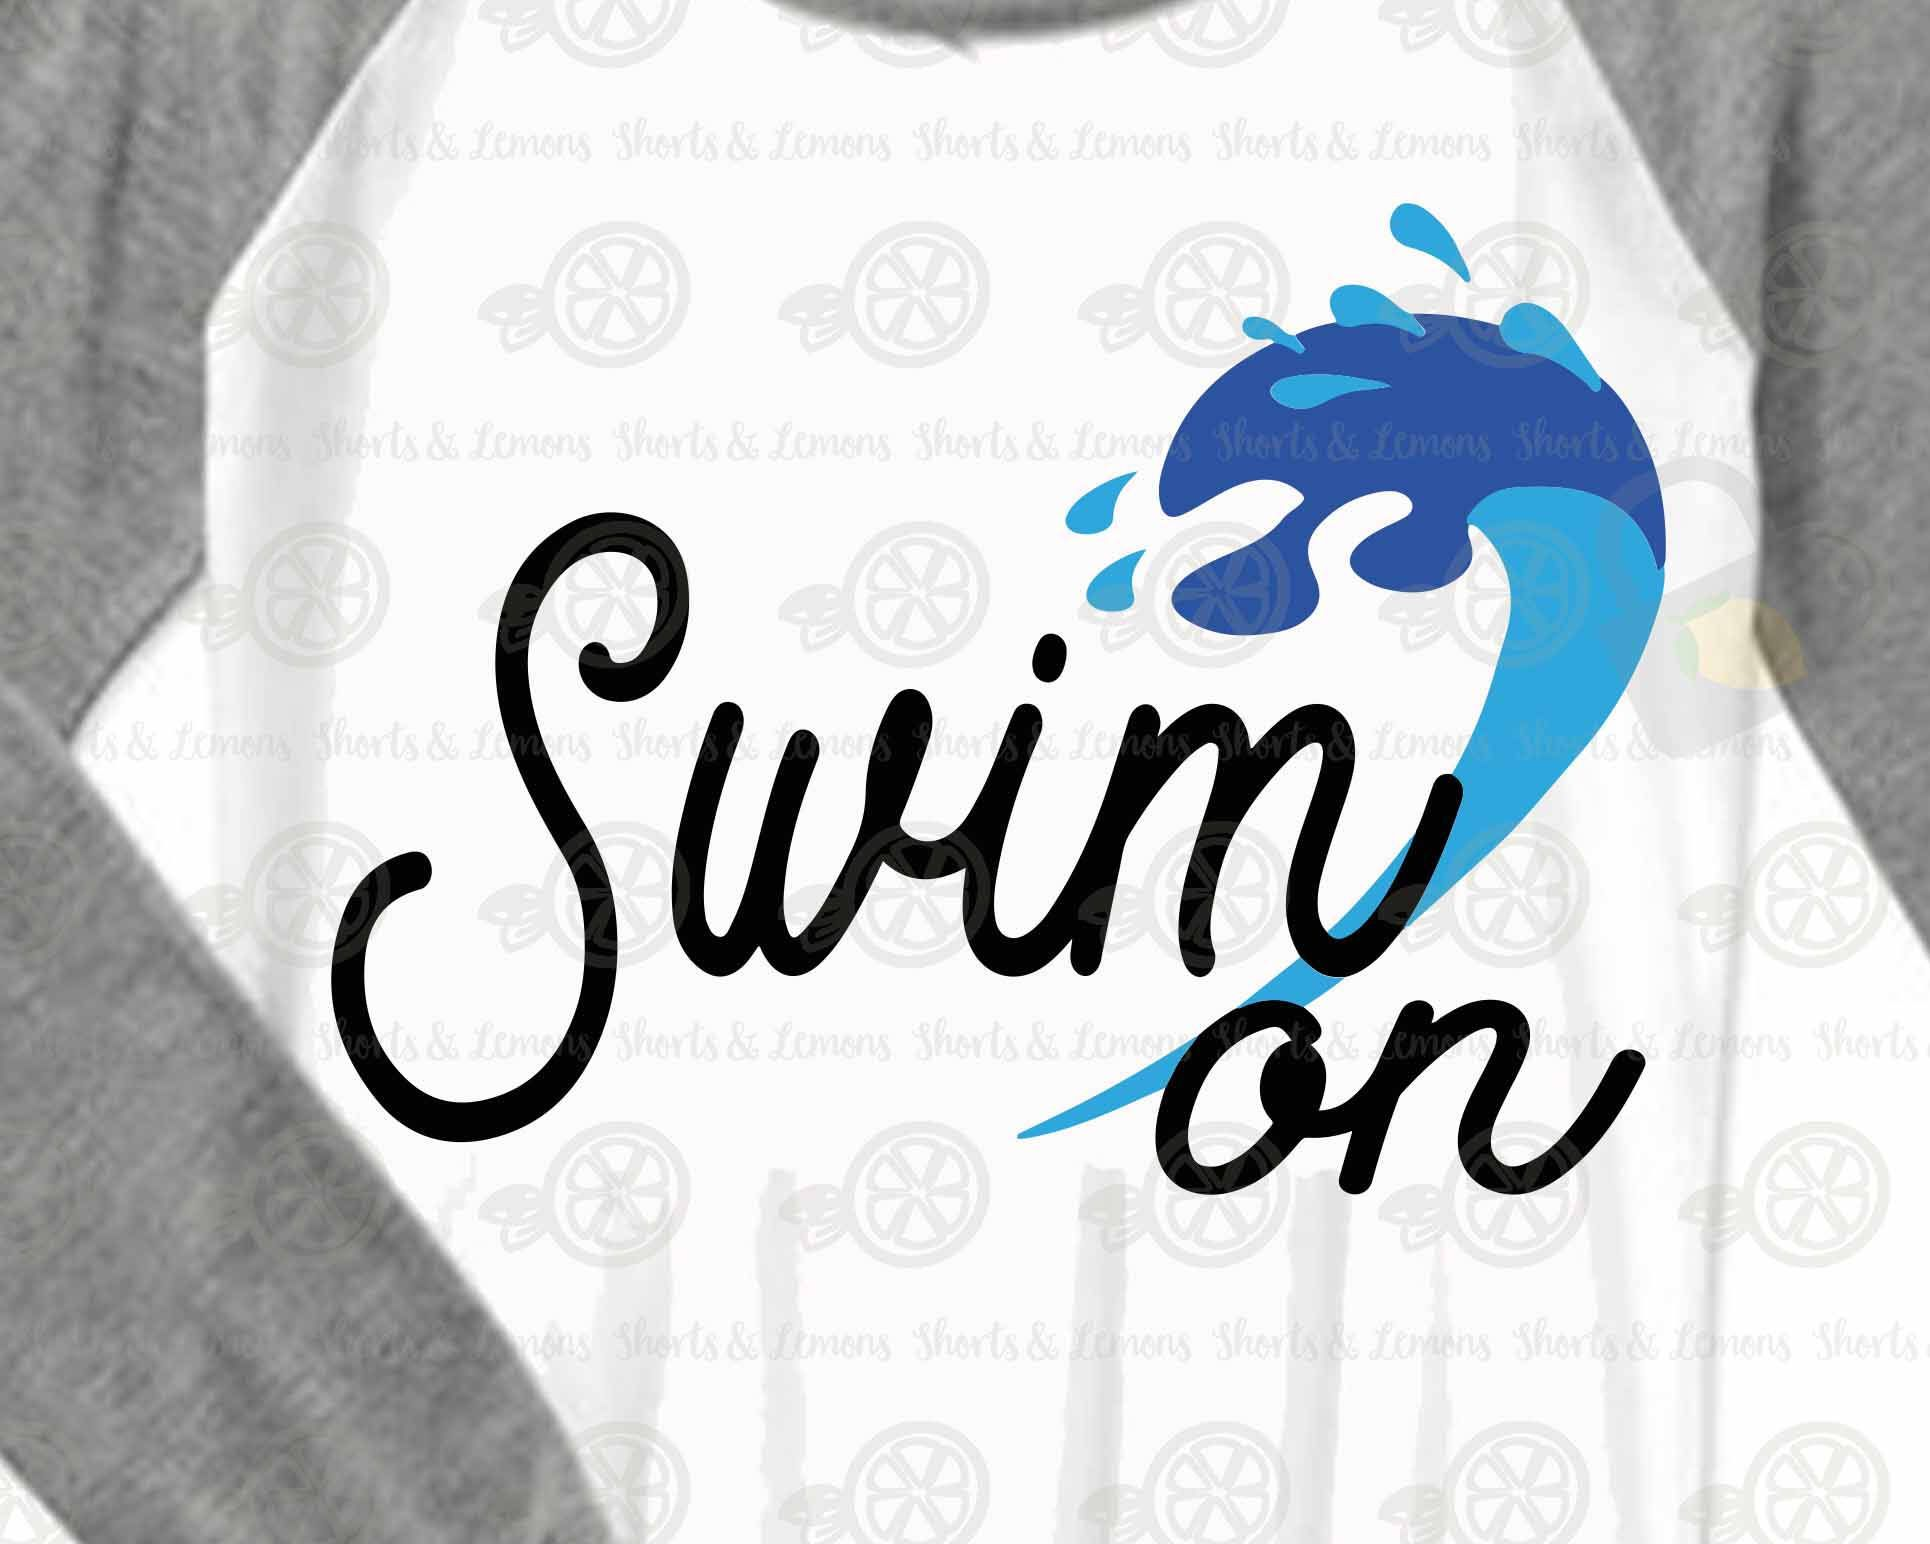 Swimming clipart for t shirts jpg free download Swim on svg, Swimming SVG, Swim svg, Swimming Clip art, Swim ... jpg free download